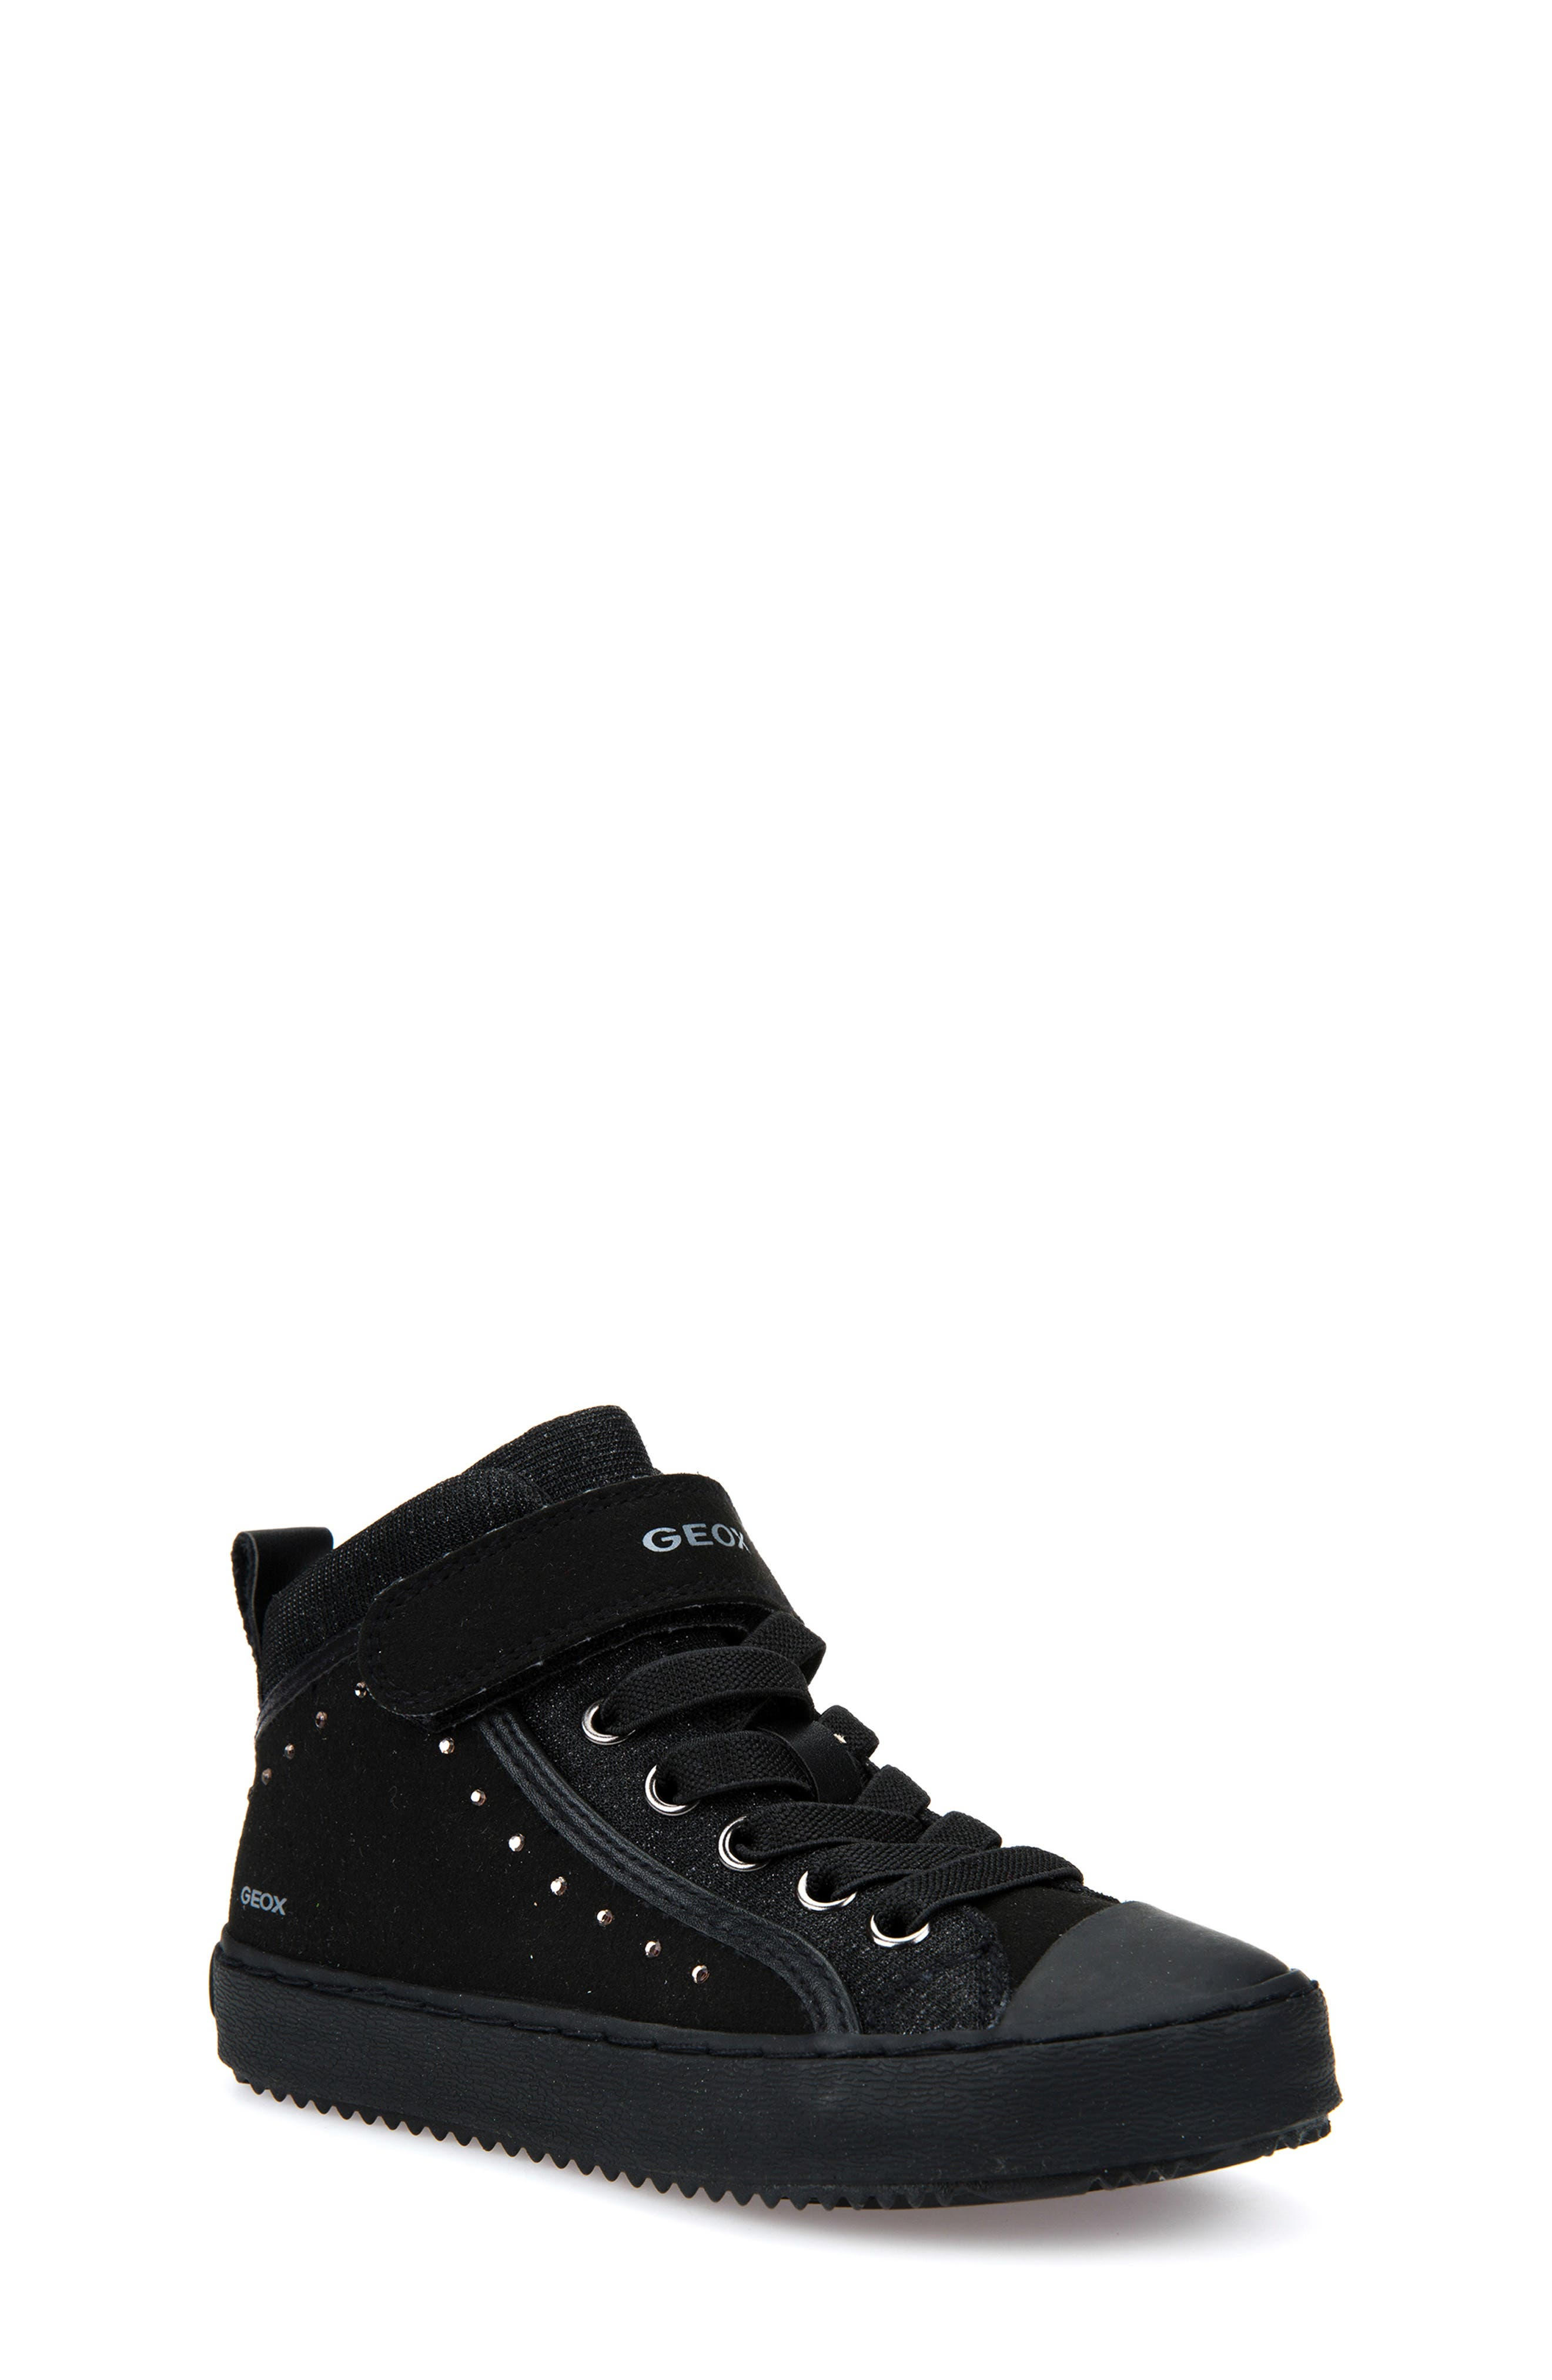 Kalispera High Top Sneaker,                             Main thumbnail 1, color,                             BLACK